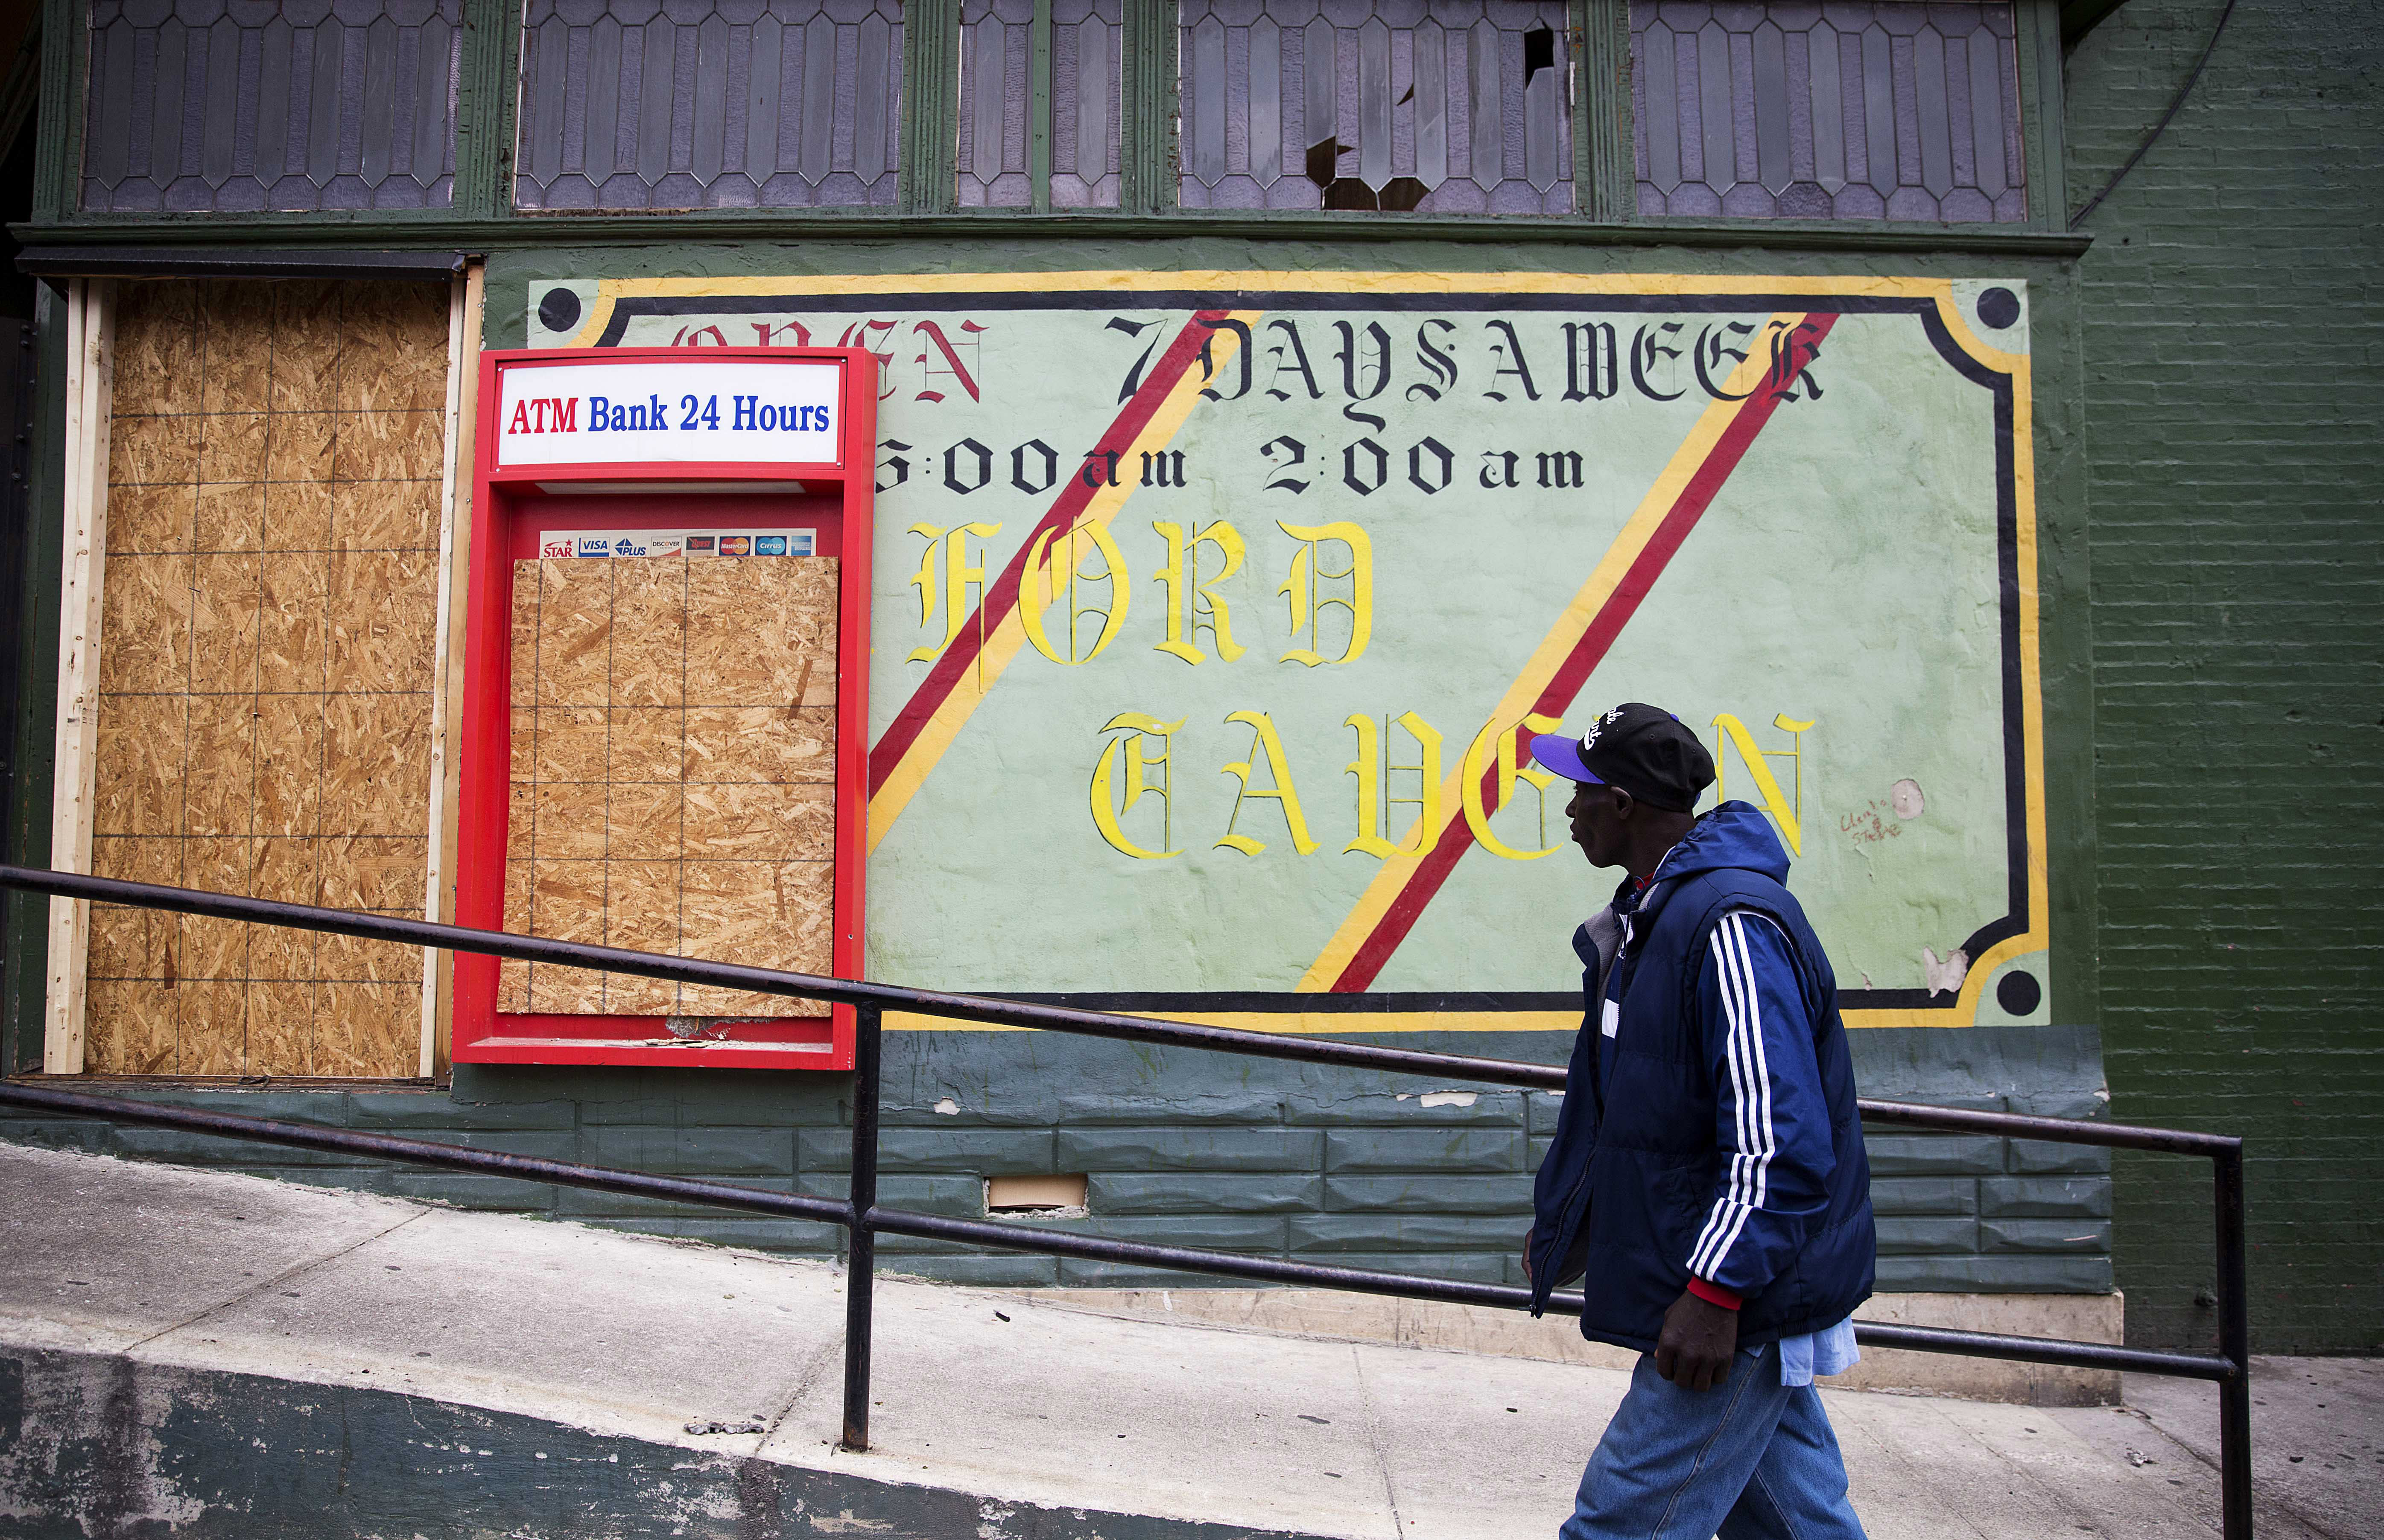 Poverty edging into 2016 presidential race amid city unrest